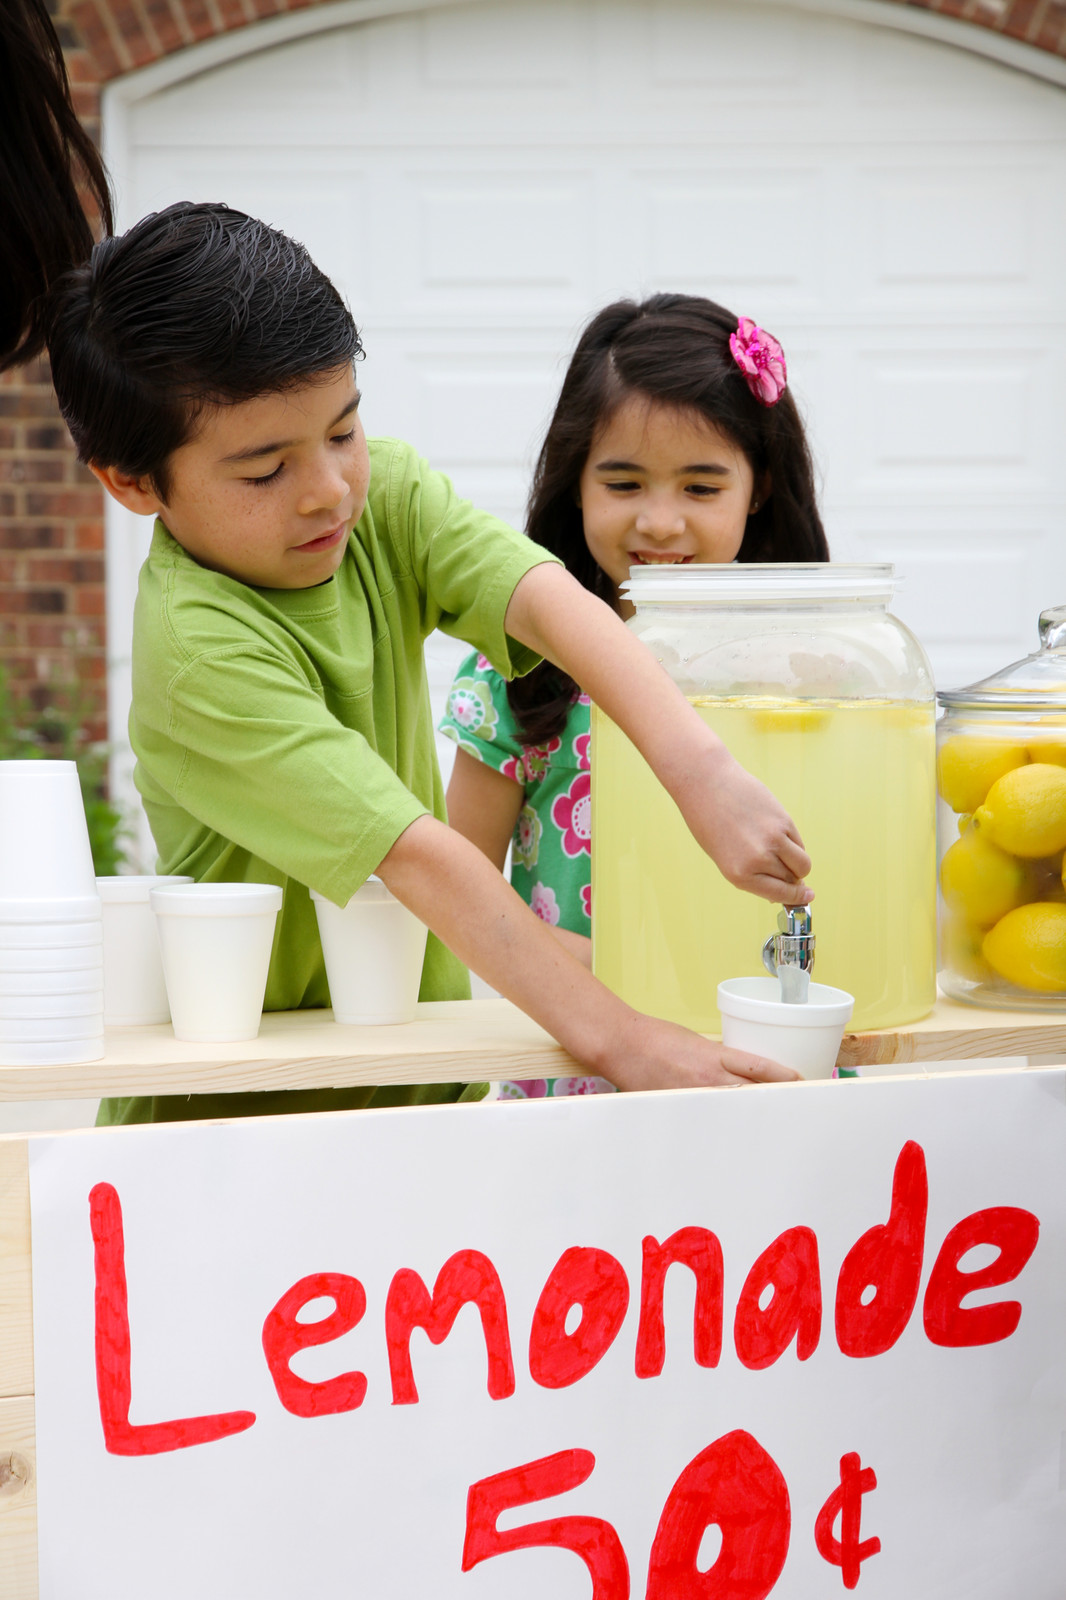 Beyond the Lemonade Stand: Straight talk about kids and money